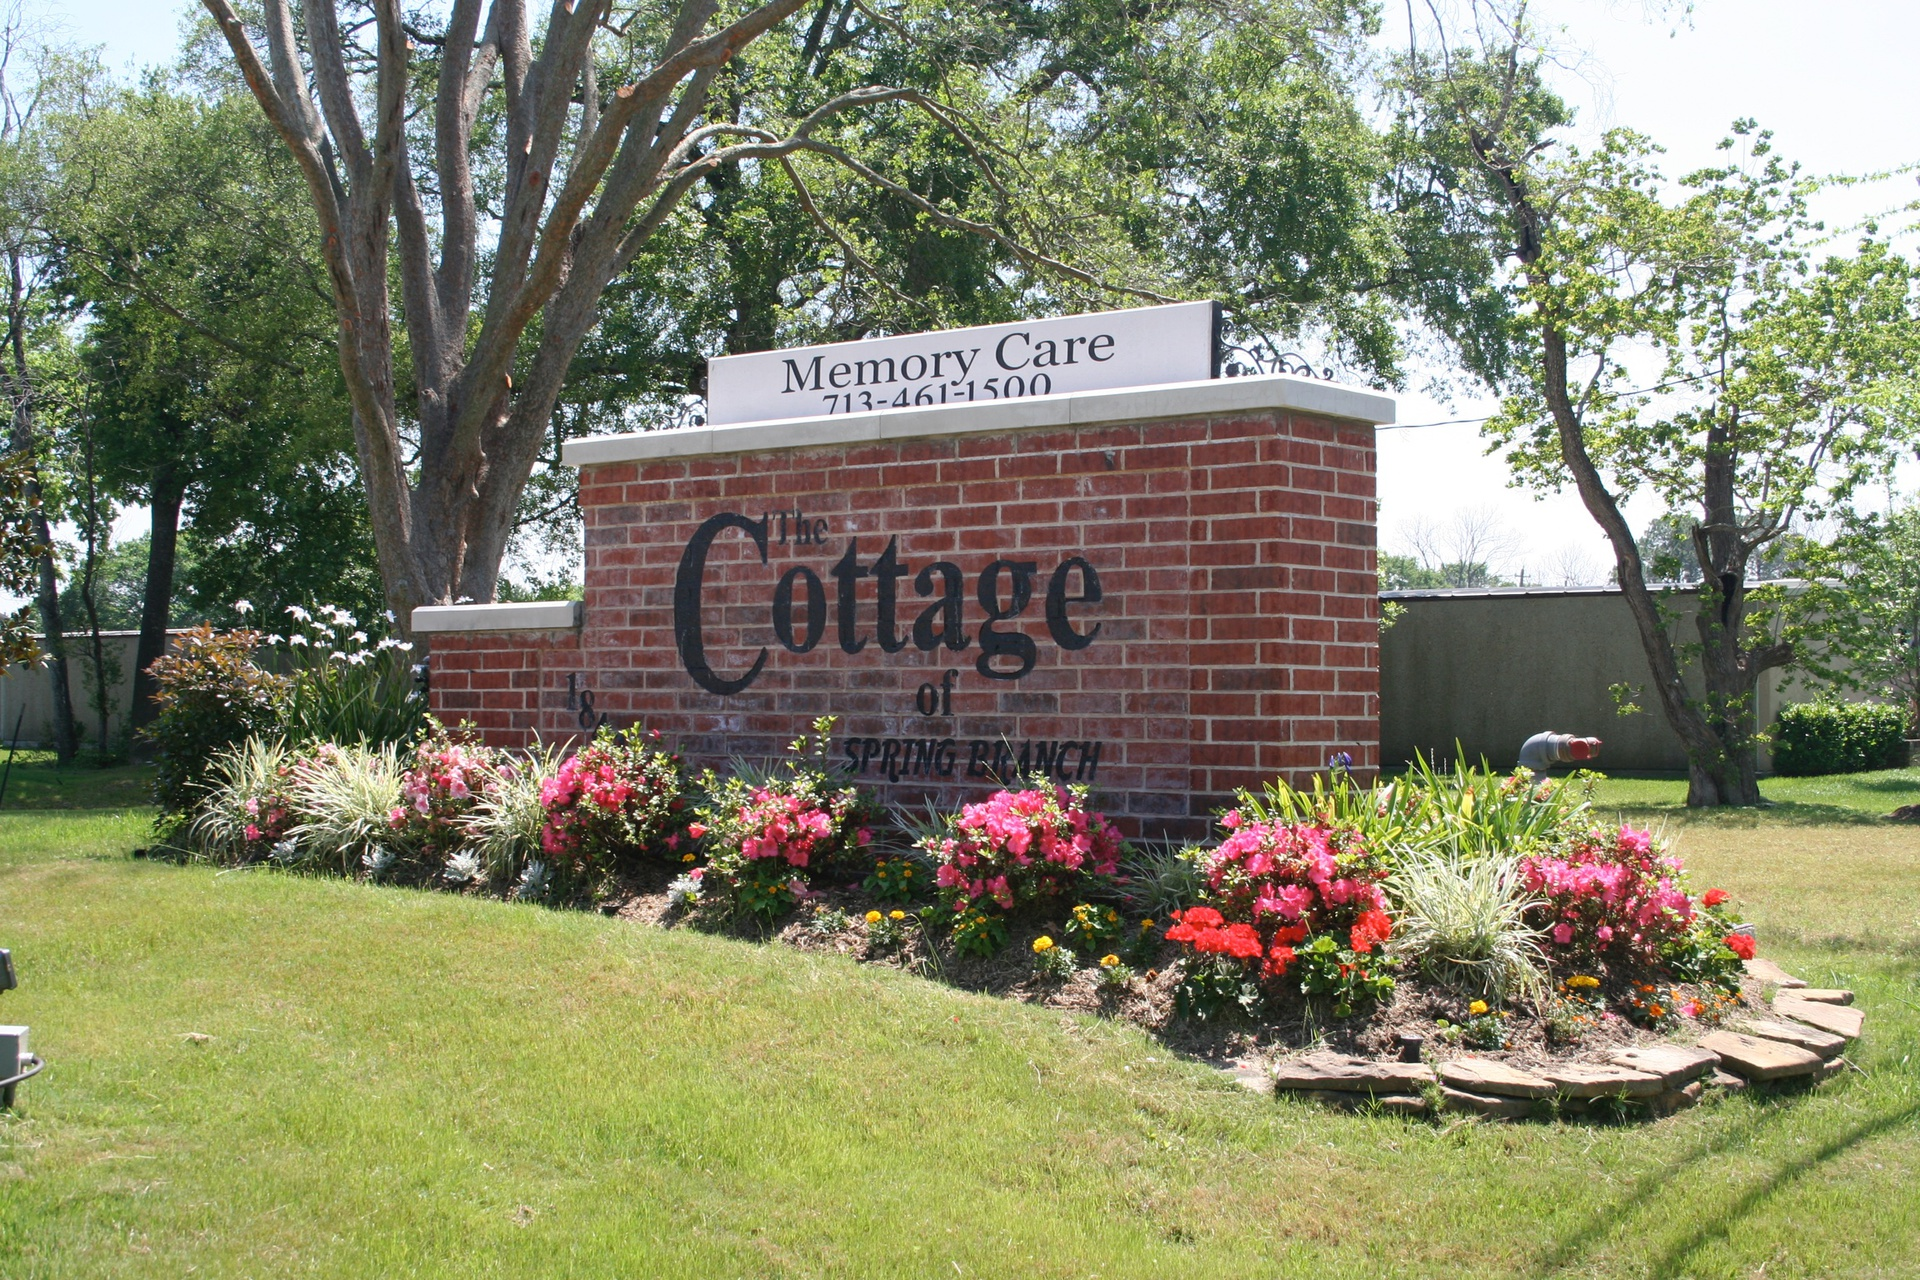 The Cottage of Spring Branch Front Sign